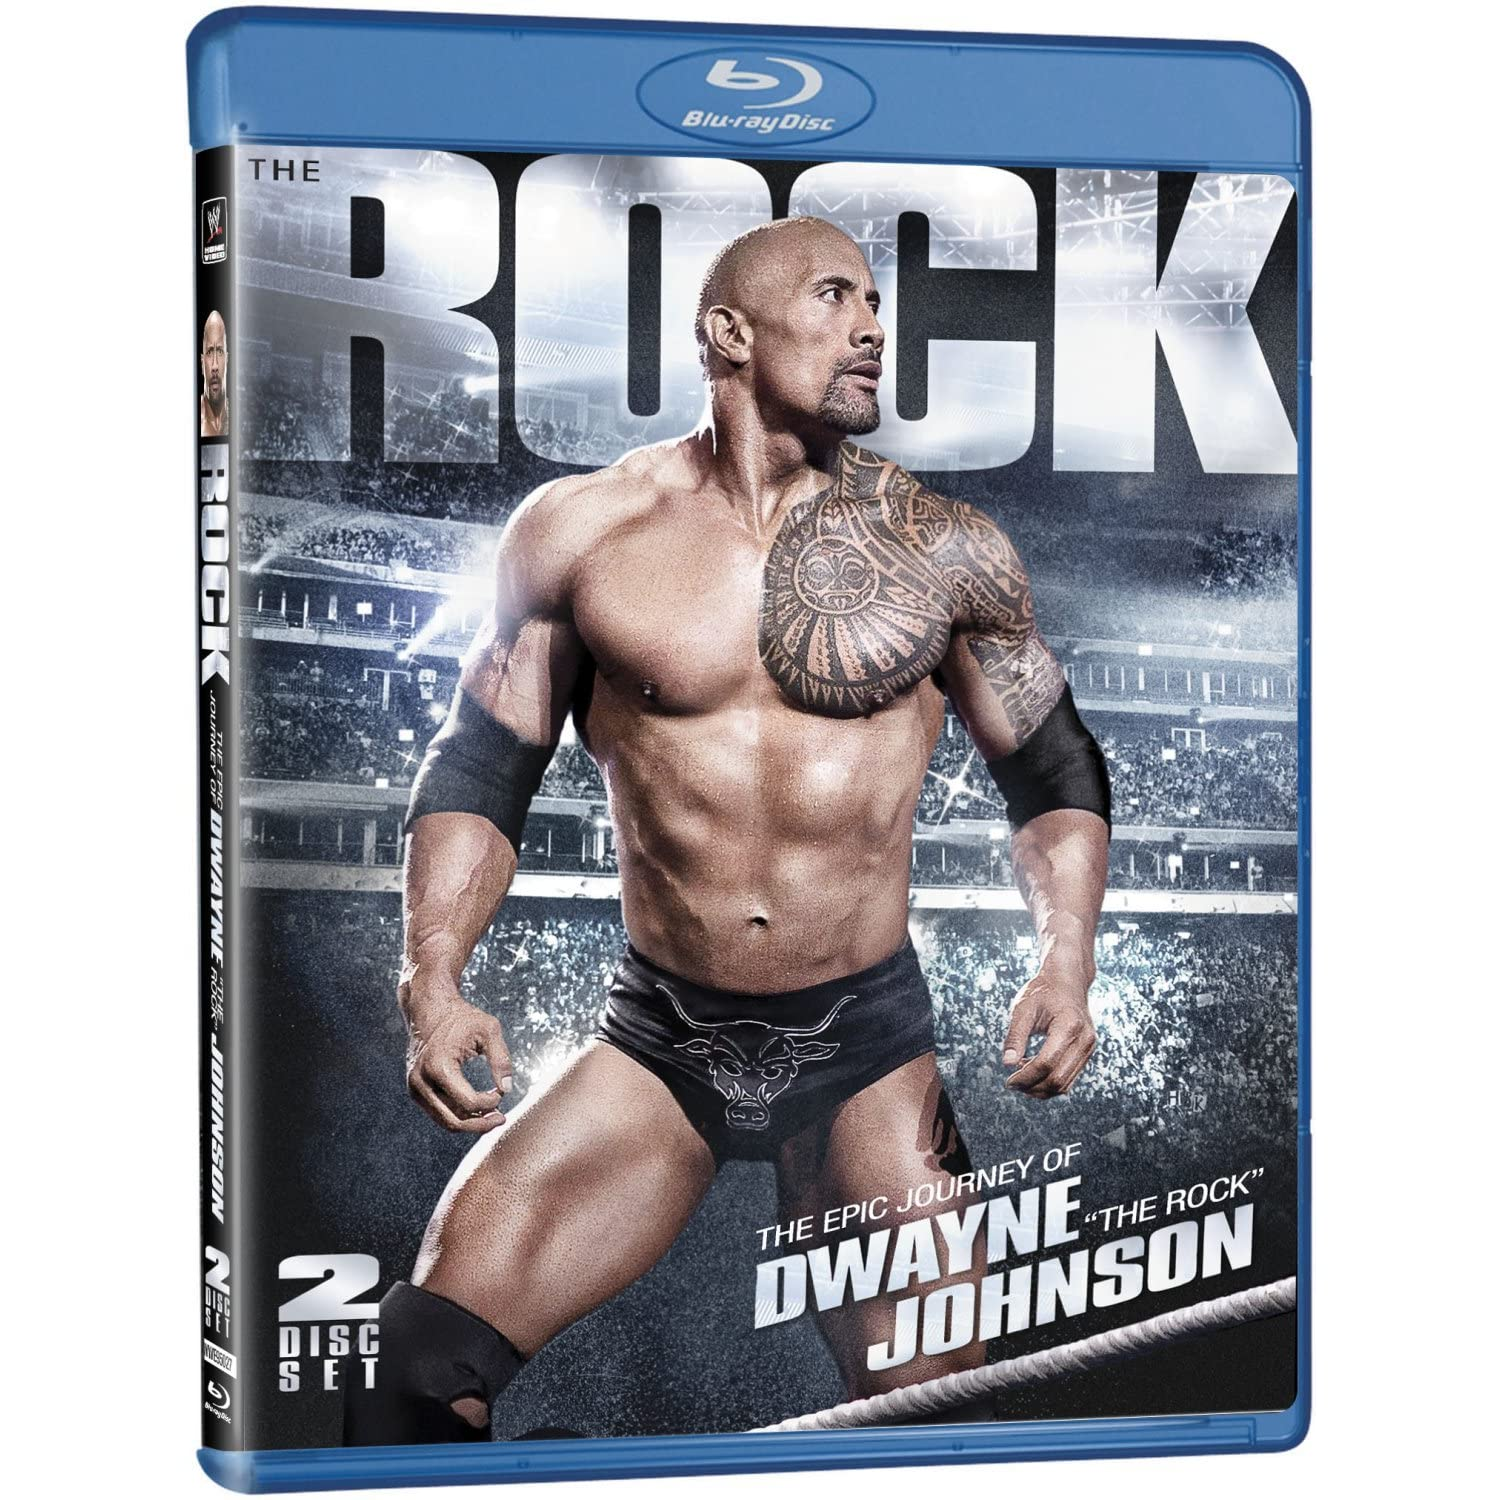 Epic Journey of The Rock